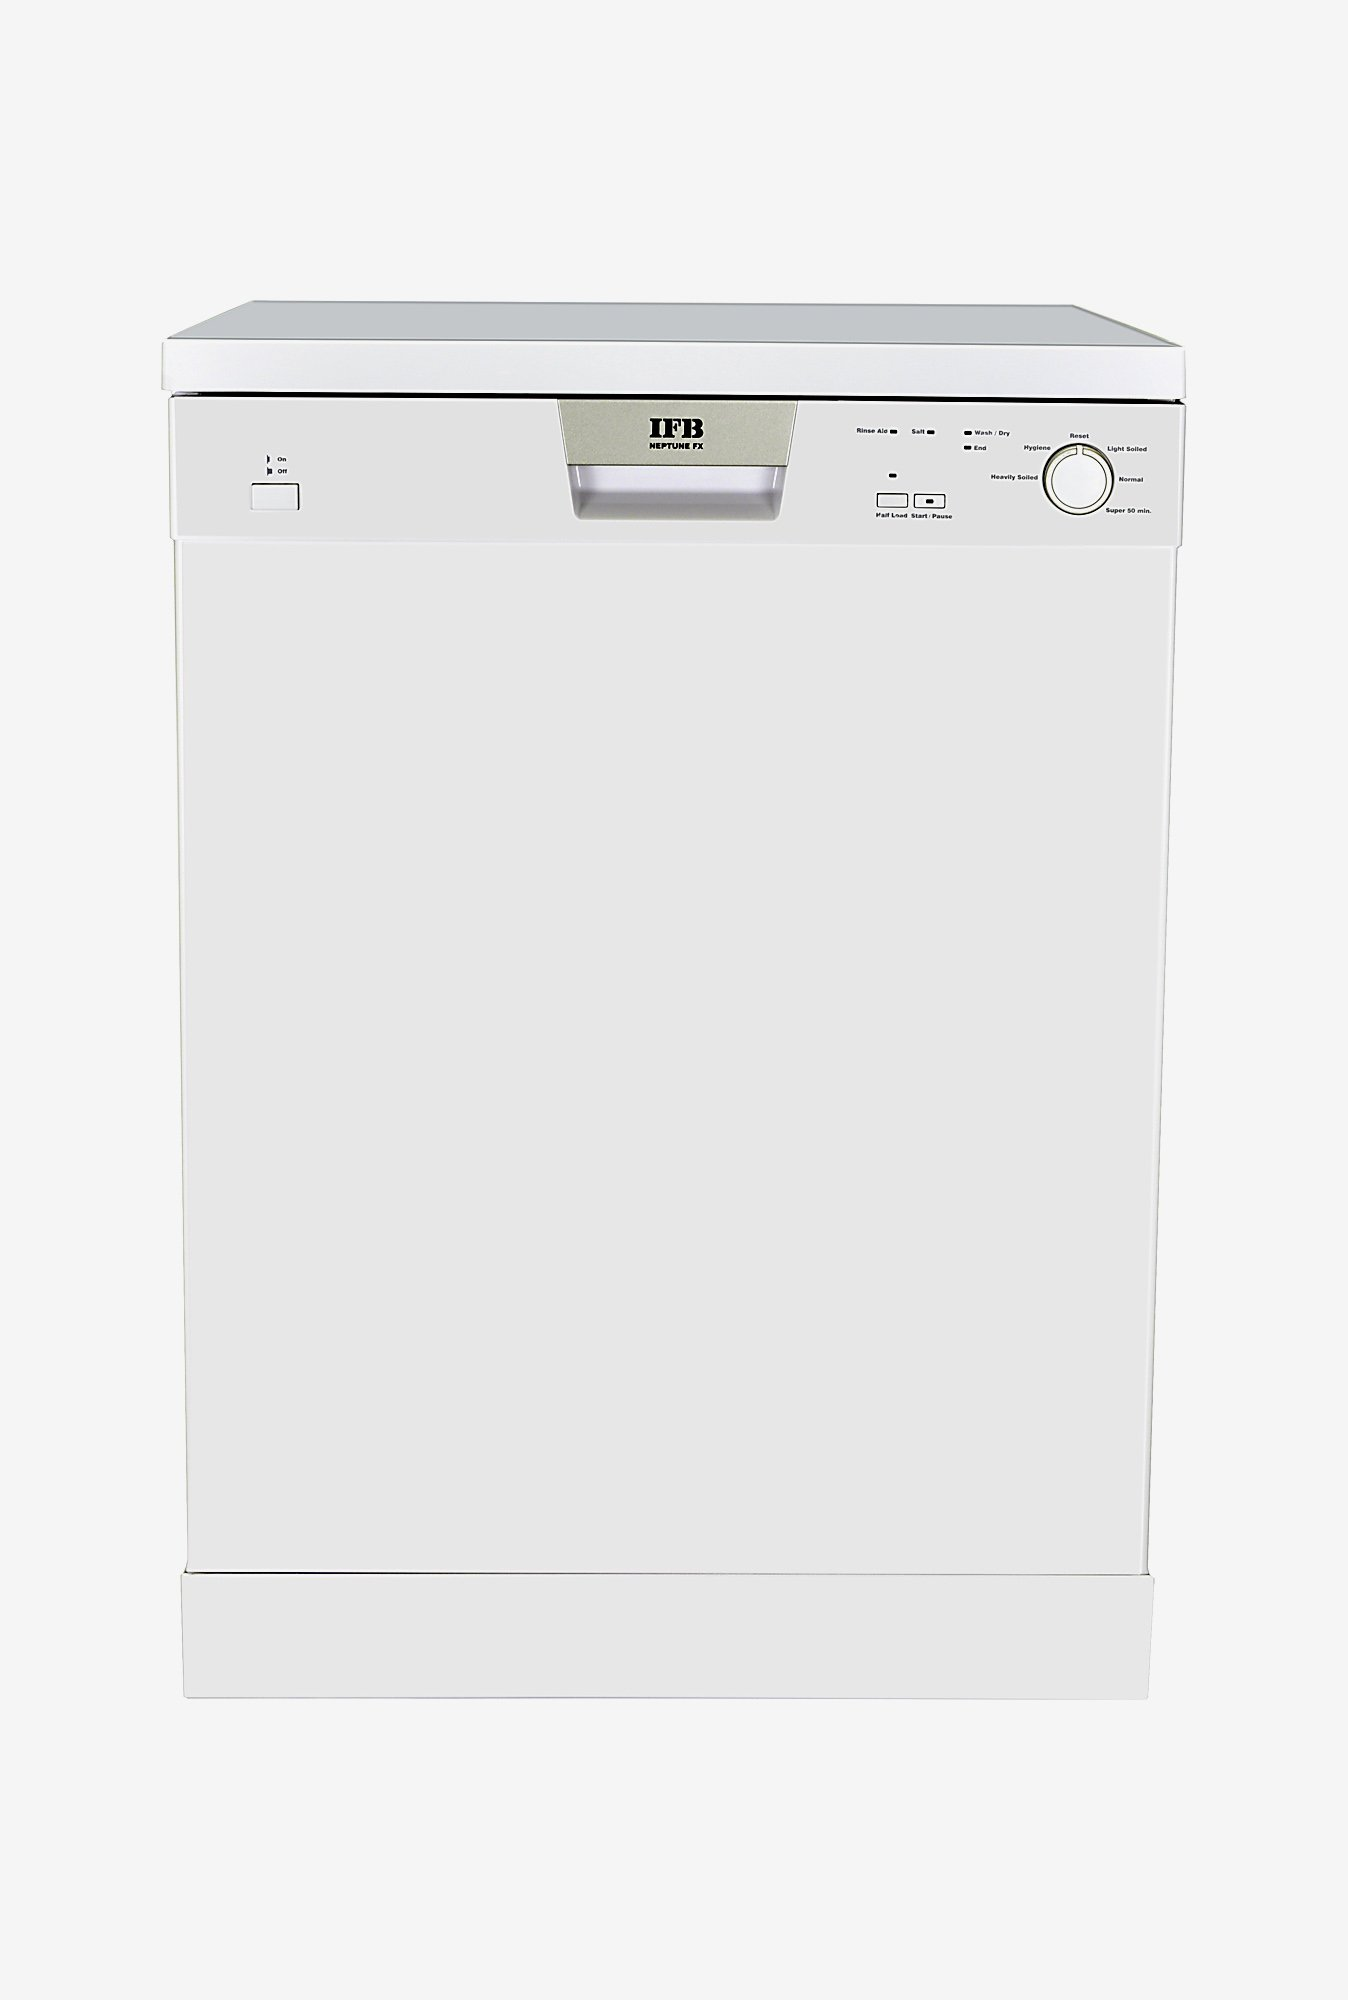 IFB Neptune FX Dish Washer (White)